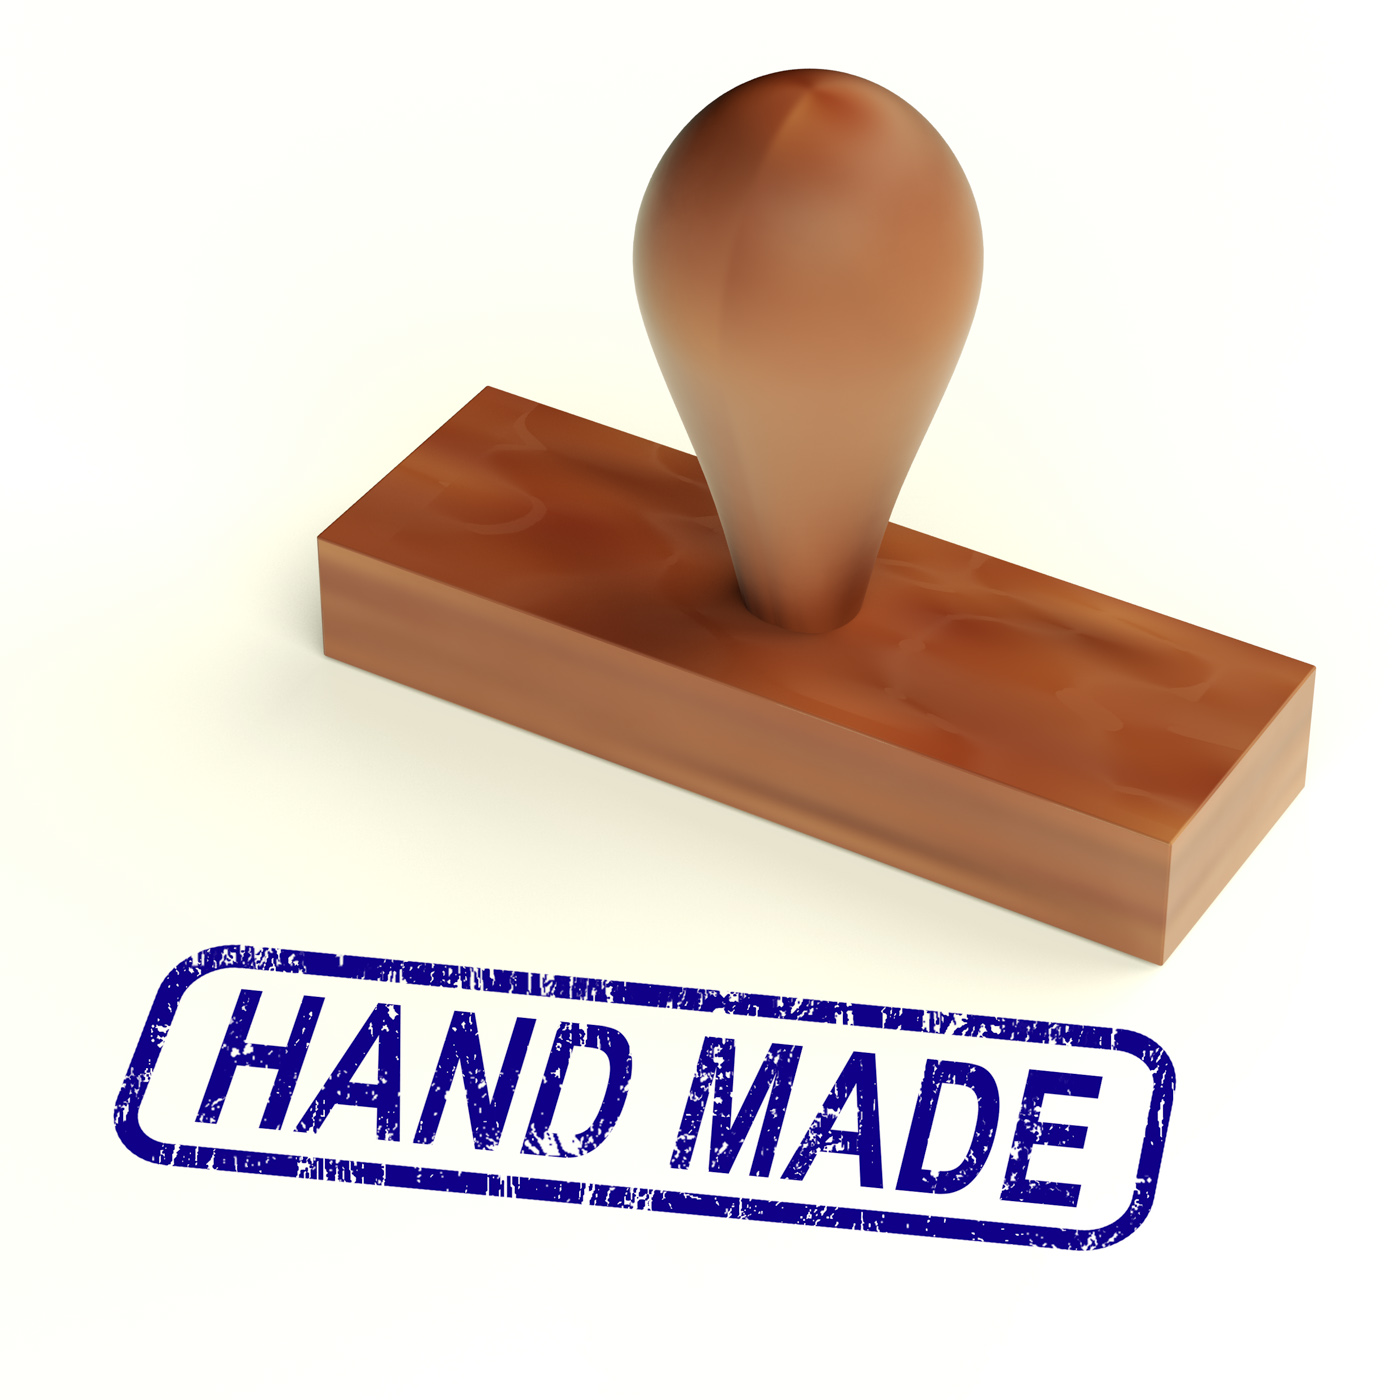 Hand made rubber stamp shows handmade products photo